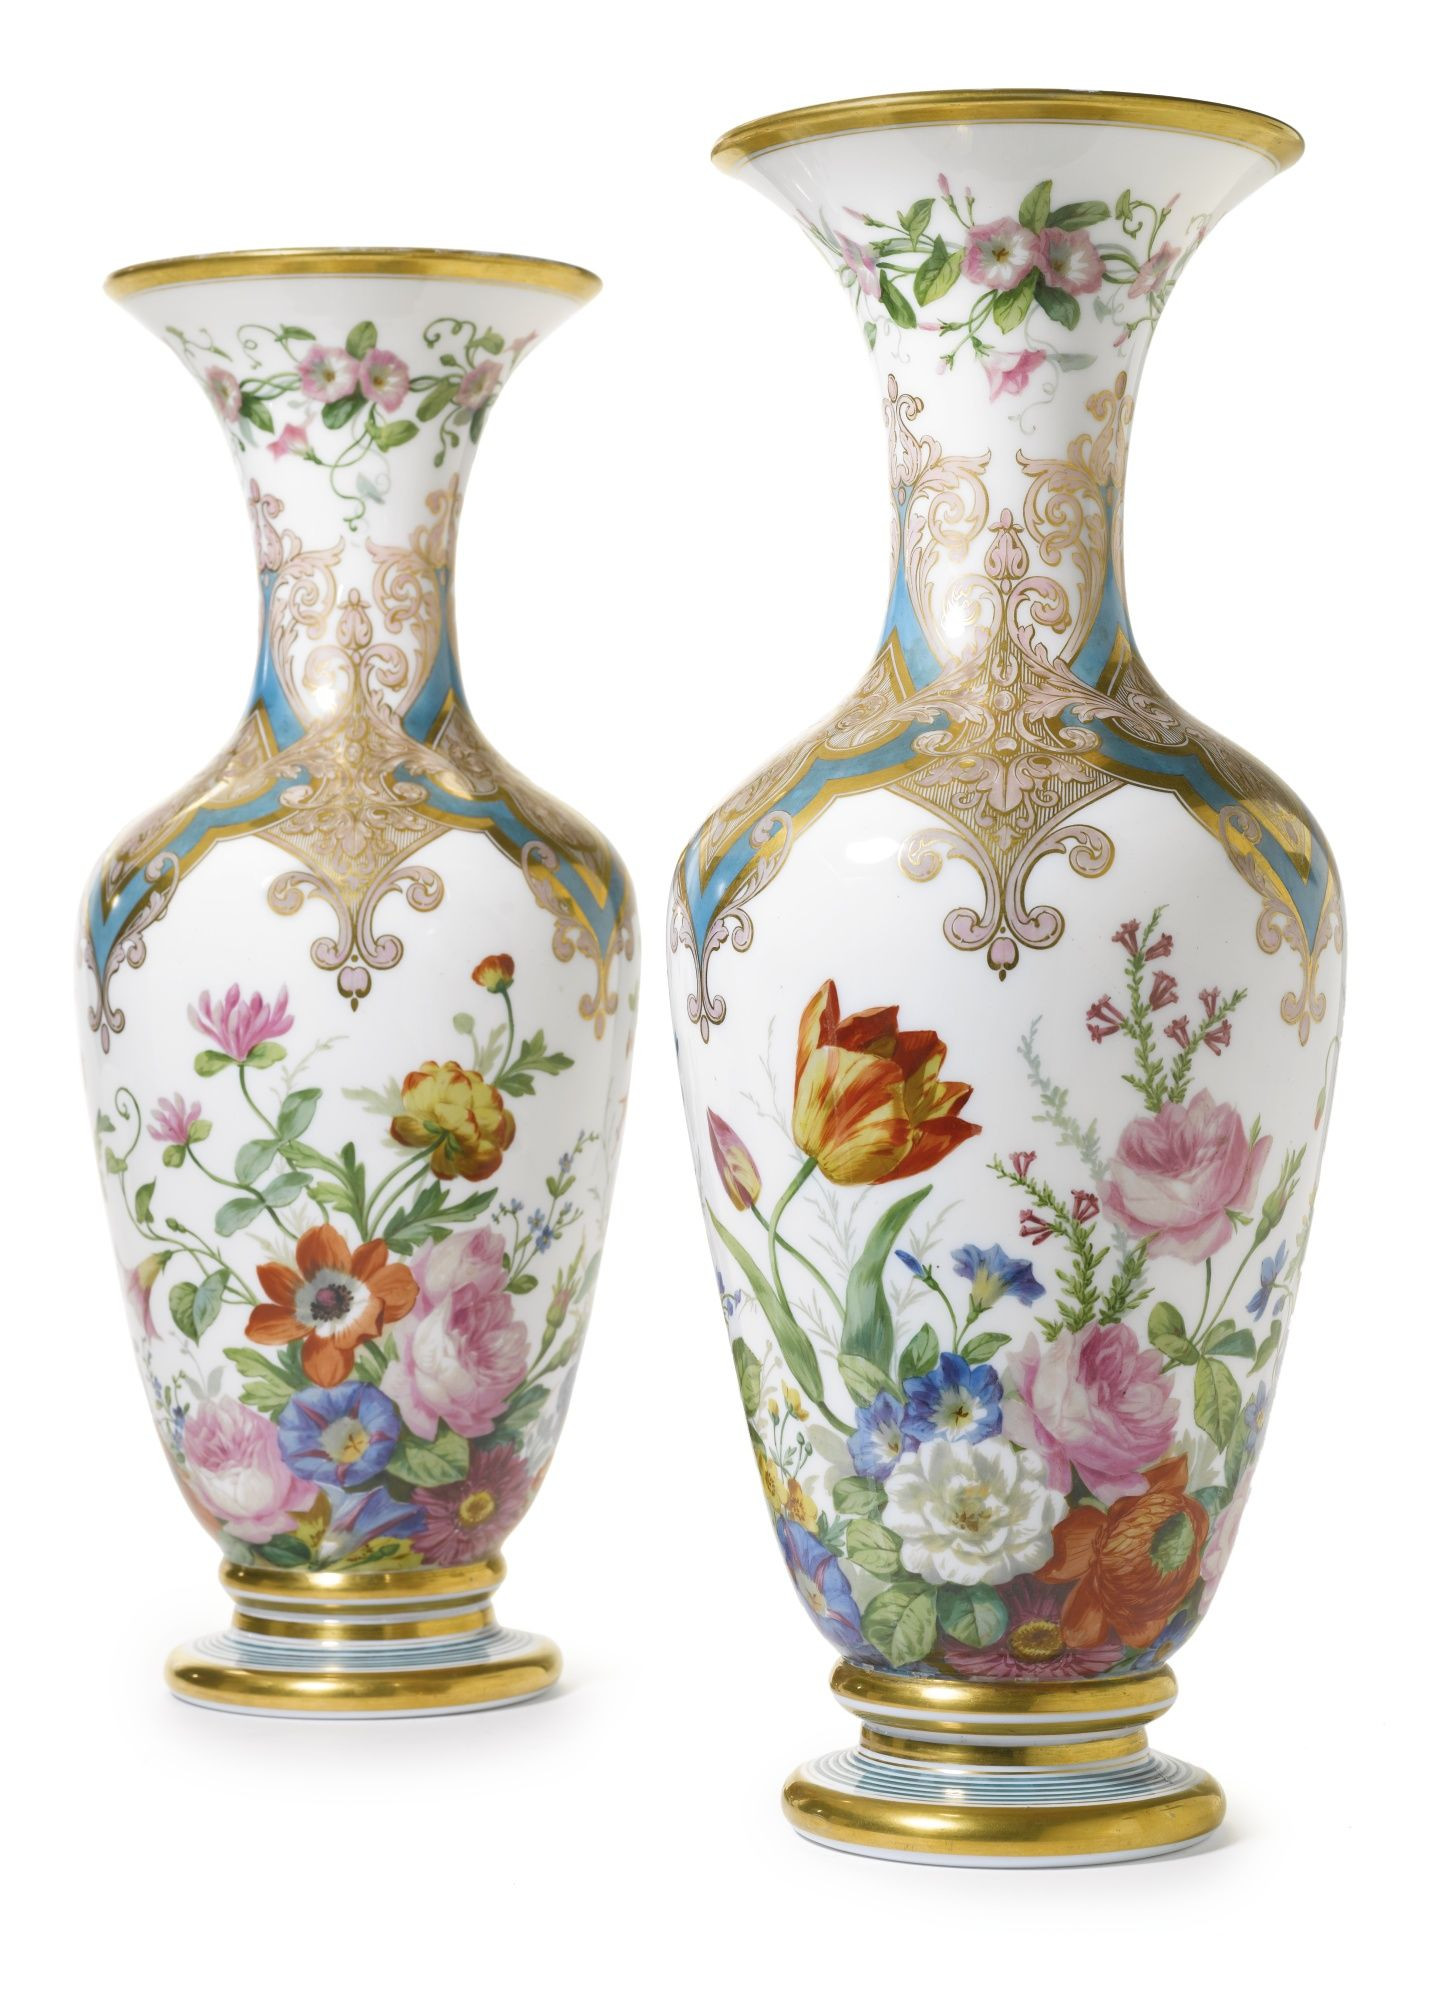 20 Perfect Chinese Vases History 2021 free download chinese vases history of a pair of french white opaline glass vasescirca 1860 lot intended for a pair of french white opaline glass vasescirca 1860 lot sothebys